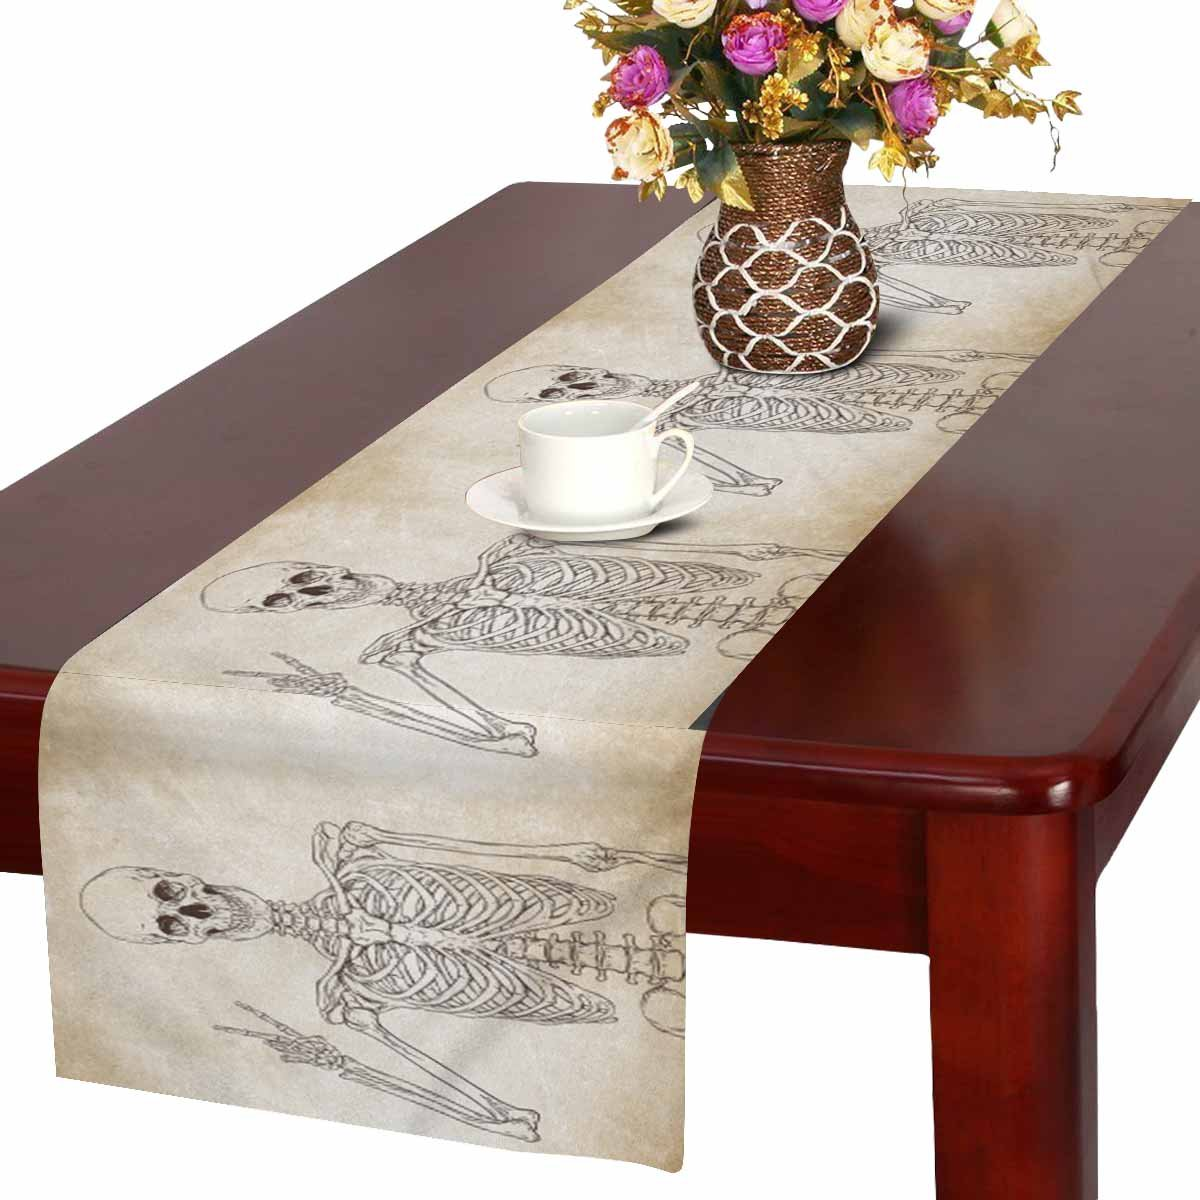 MKHERT Funny Human Skeleton Posing over Old Grunge Background Table Runner  for Office Kitchen Dining Wedding Party Banquet 16x72 Inch